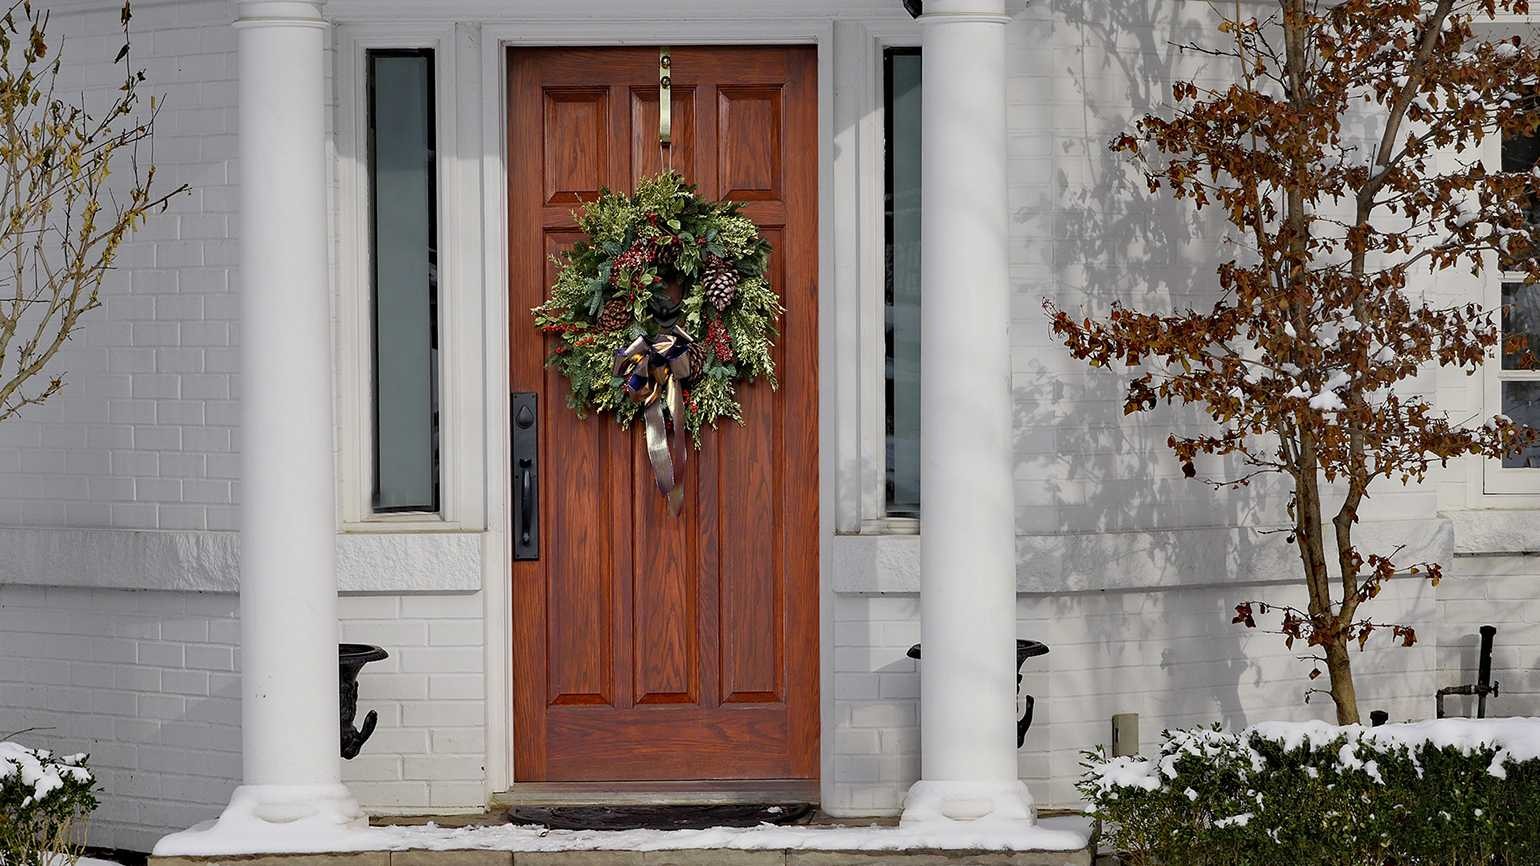 A Christmas wreath on the door of a white house